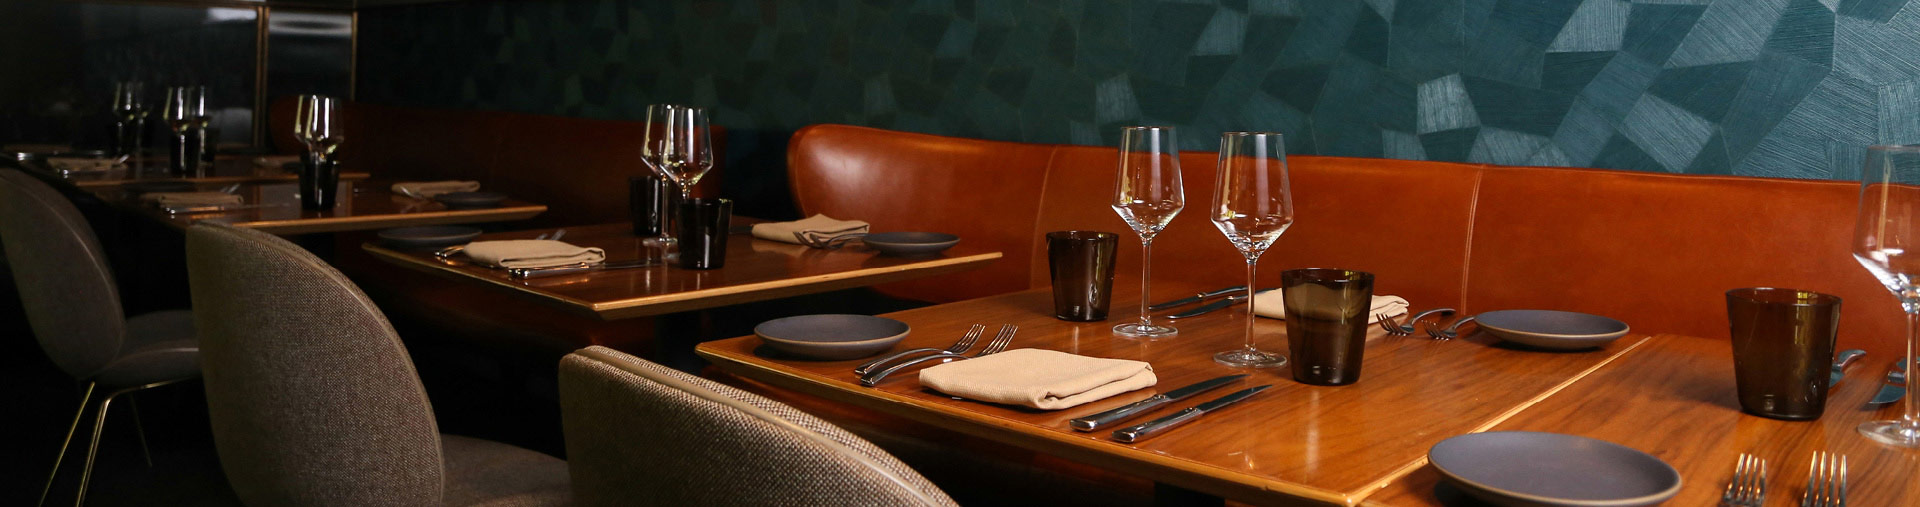 Dining table set for an event at Nick + Stef's Steakhouse in Los Angeles